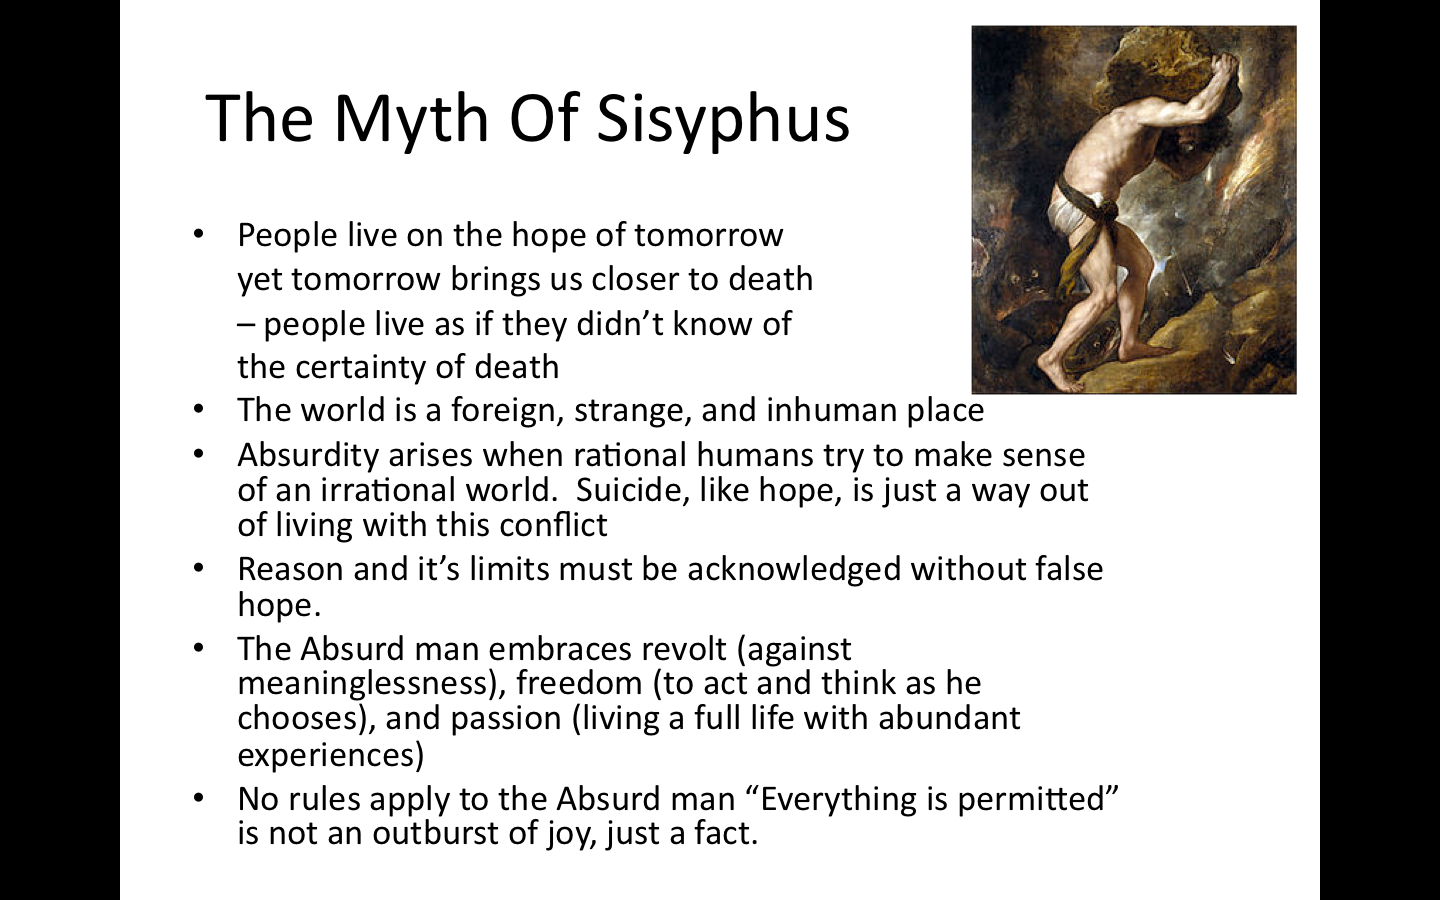 camus essay on sisyphus This lesson looks at how an existentialist perspective would shed light on josh's  situation we'll focus on the essay the myth of sisyphus by albert camus.